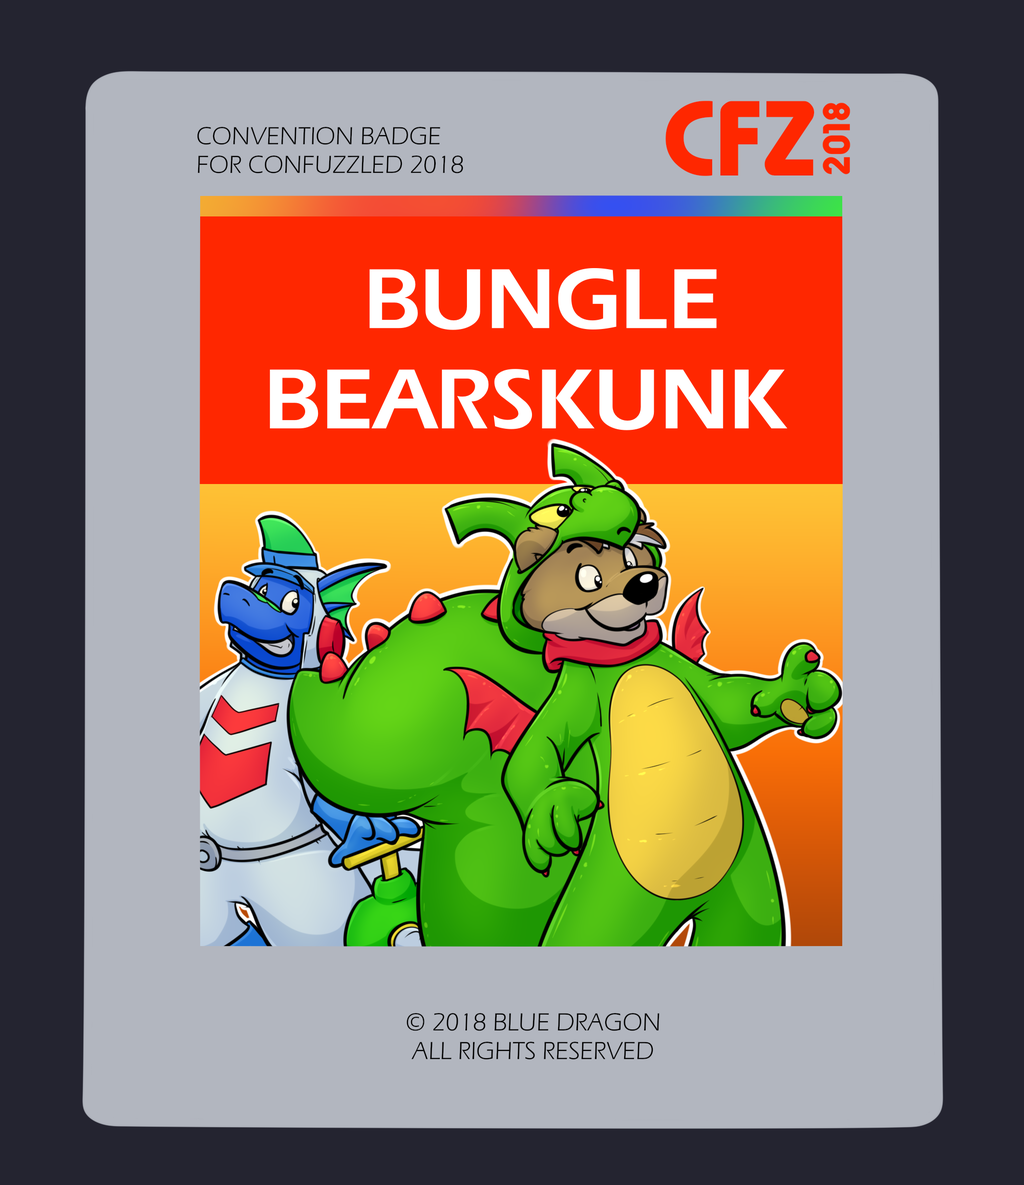 Most recent image: Confuzzled 2018 Badges - Bungle